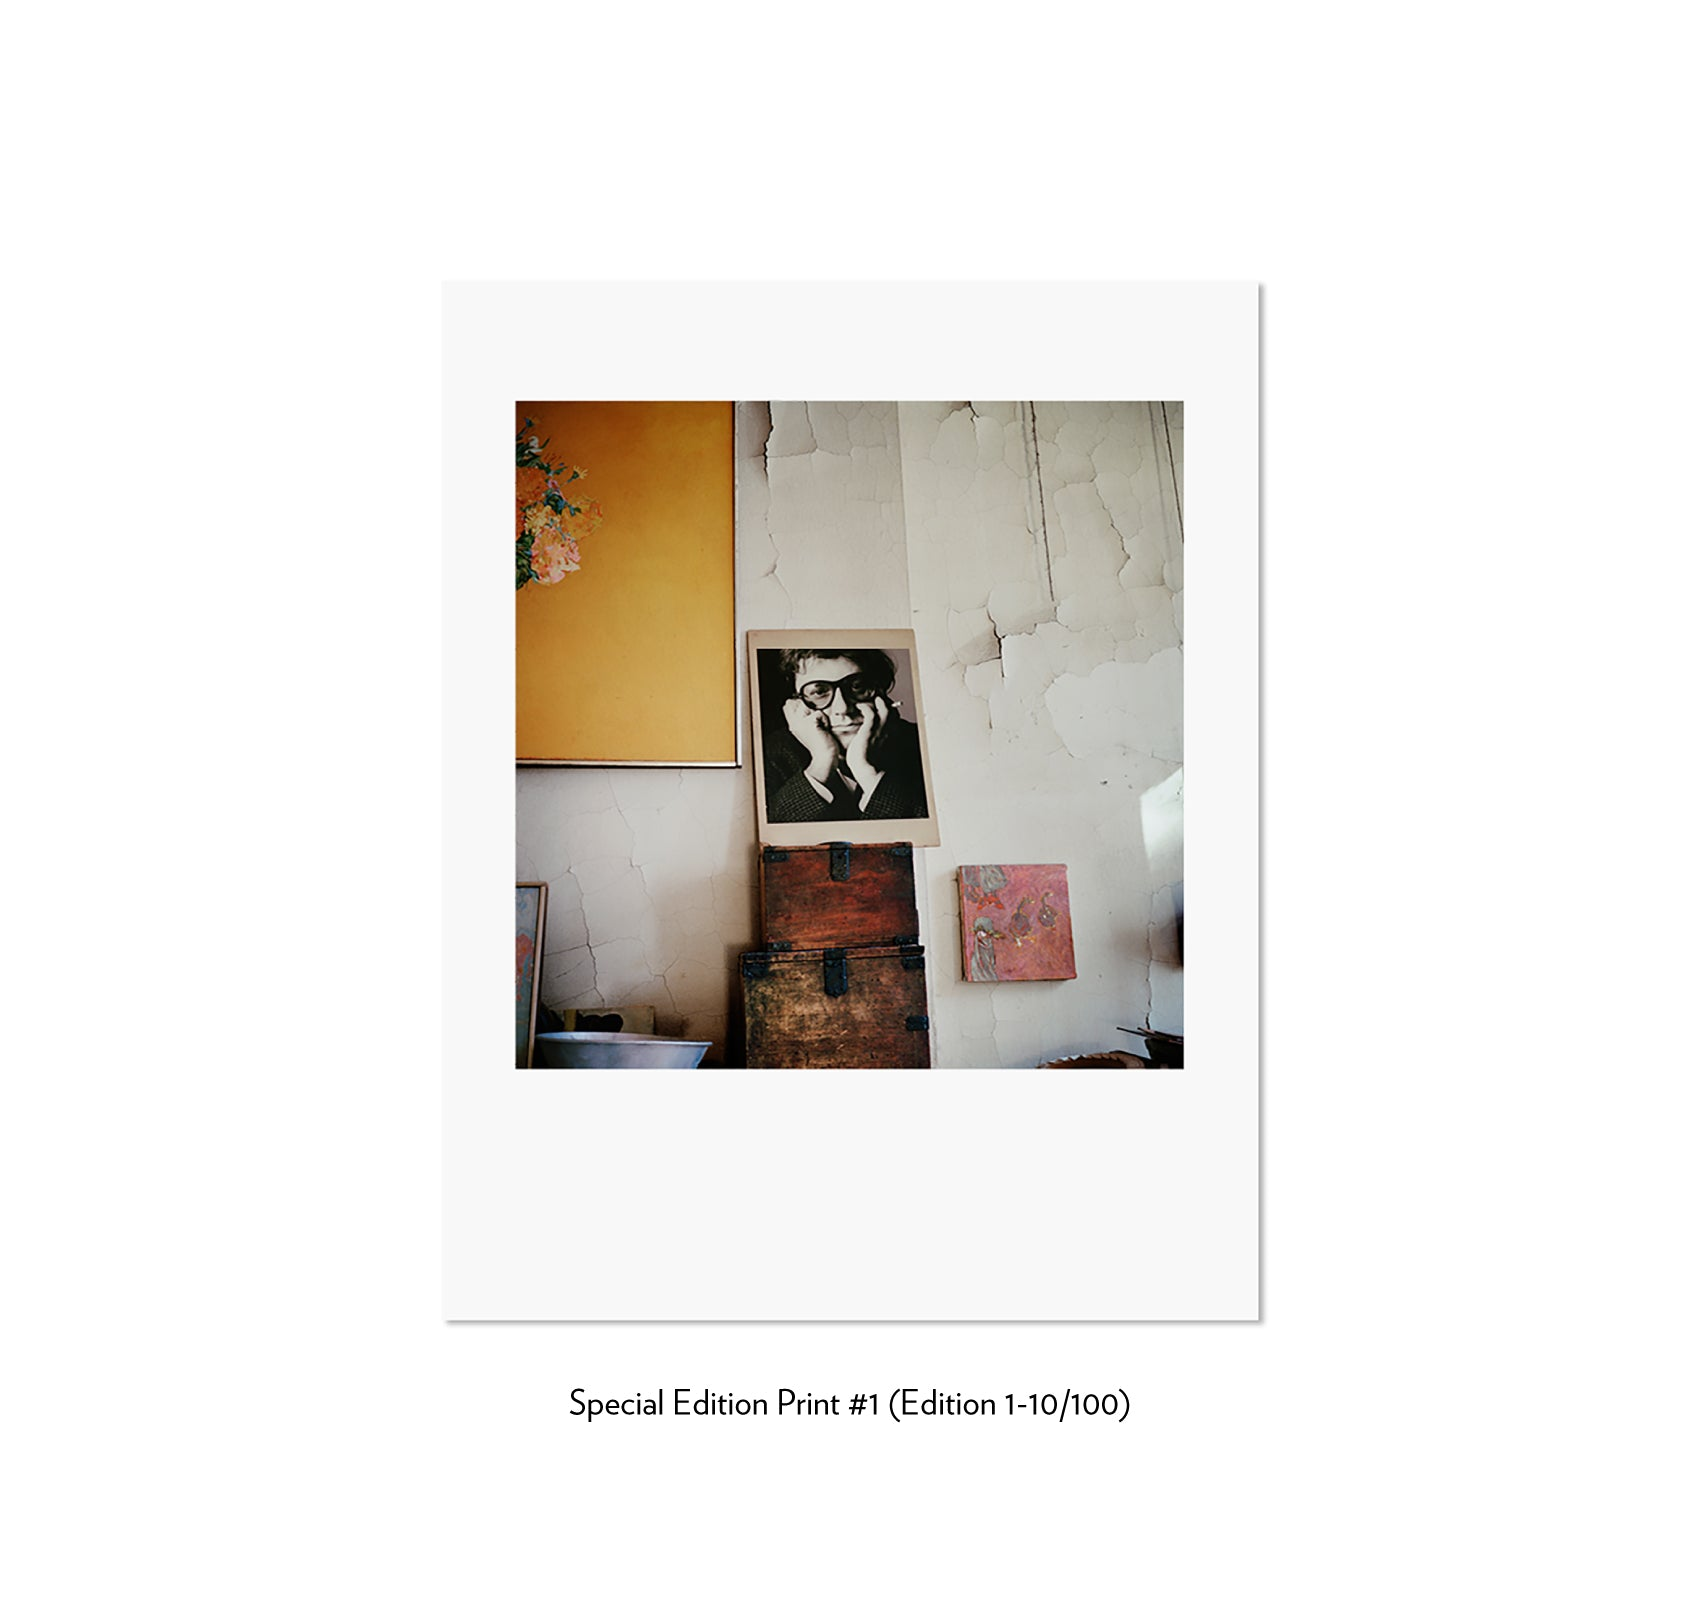 SAUL LEITER by François Halard [JAPANESE SPECIAL EDITION]